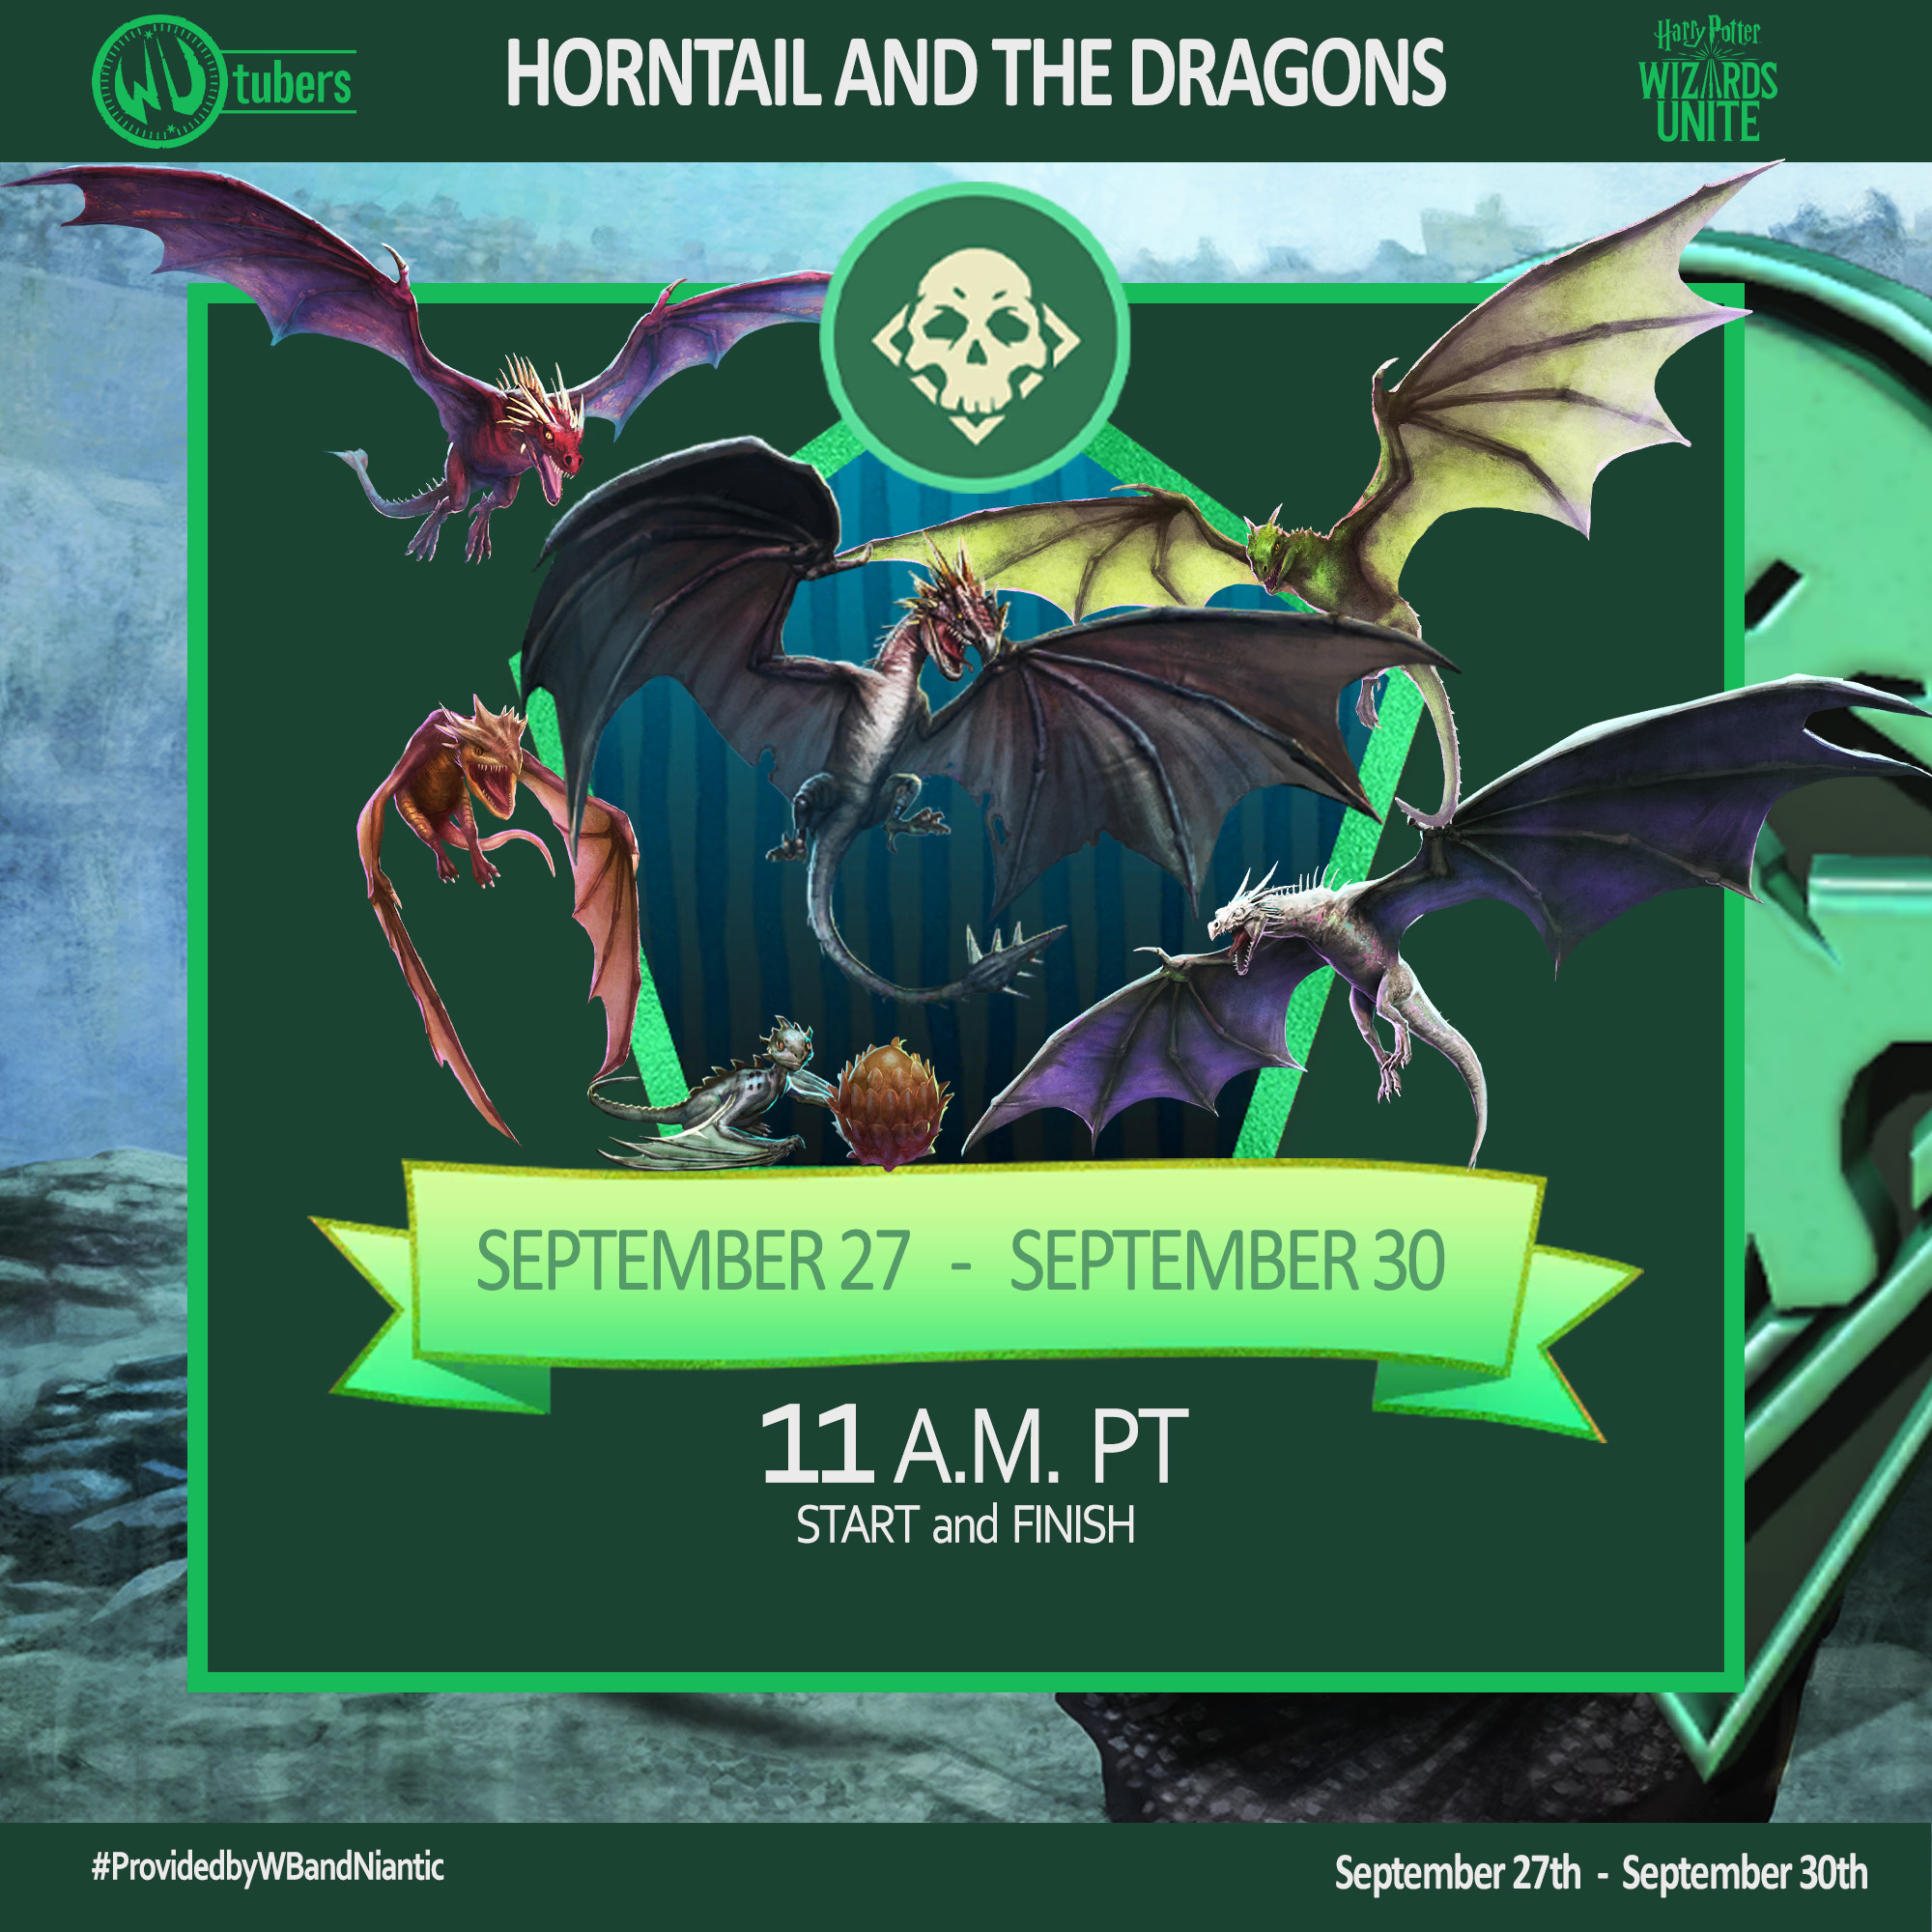 Horntail__Dragons_Event_Date.jpg